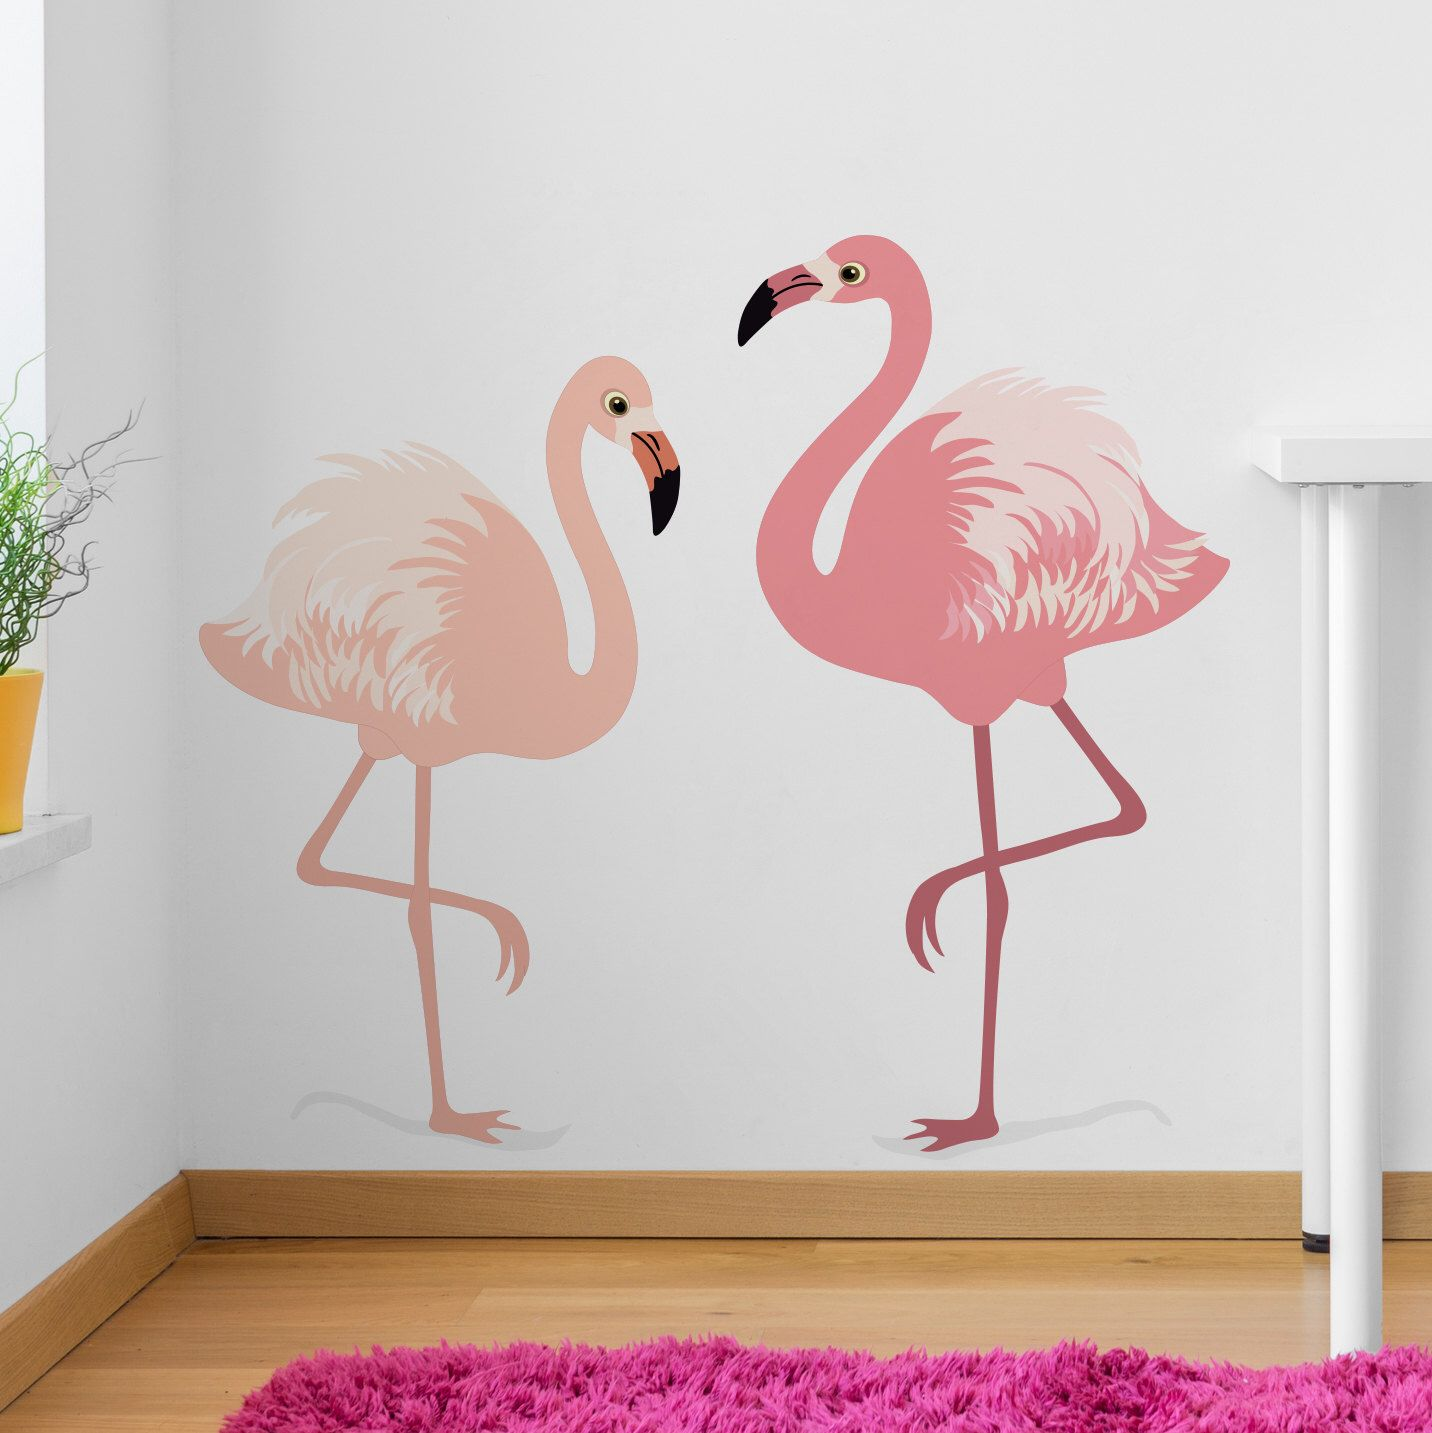 Wall Sticker Set Of Two Flamingos Decals Wall Tattoo Etsy Flamingo Decal Large Wall Stickers Wall Sticker